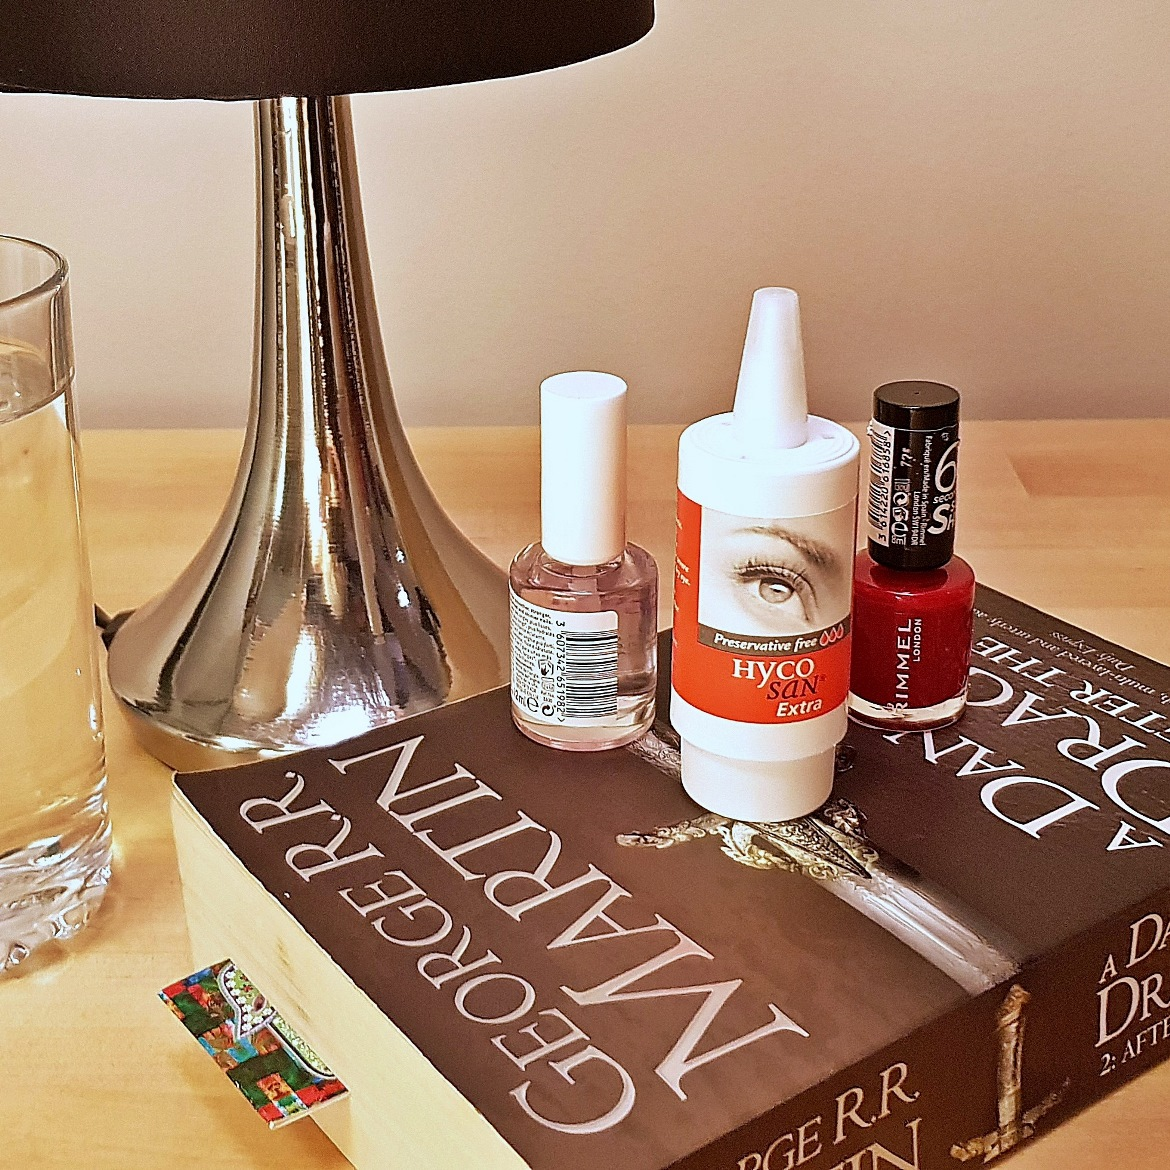 Eyedrops on my bedside table - Eye Dryness and my Addiction to Screens